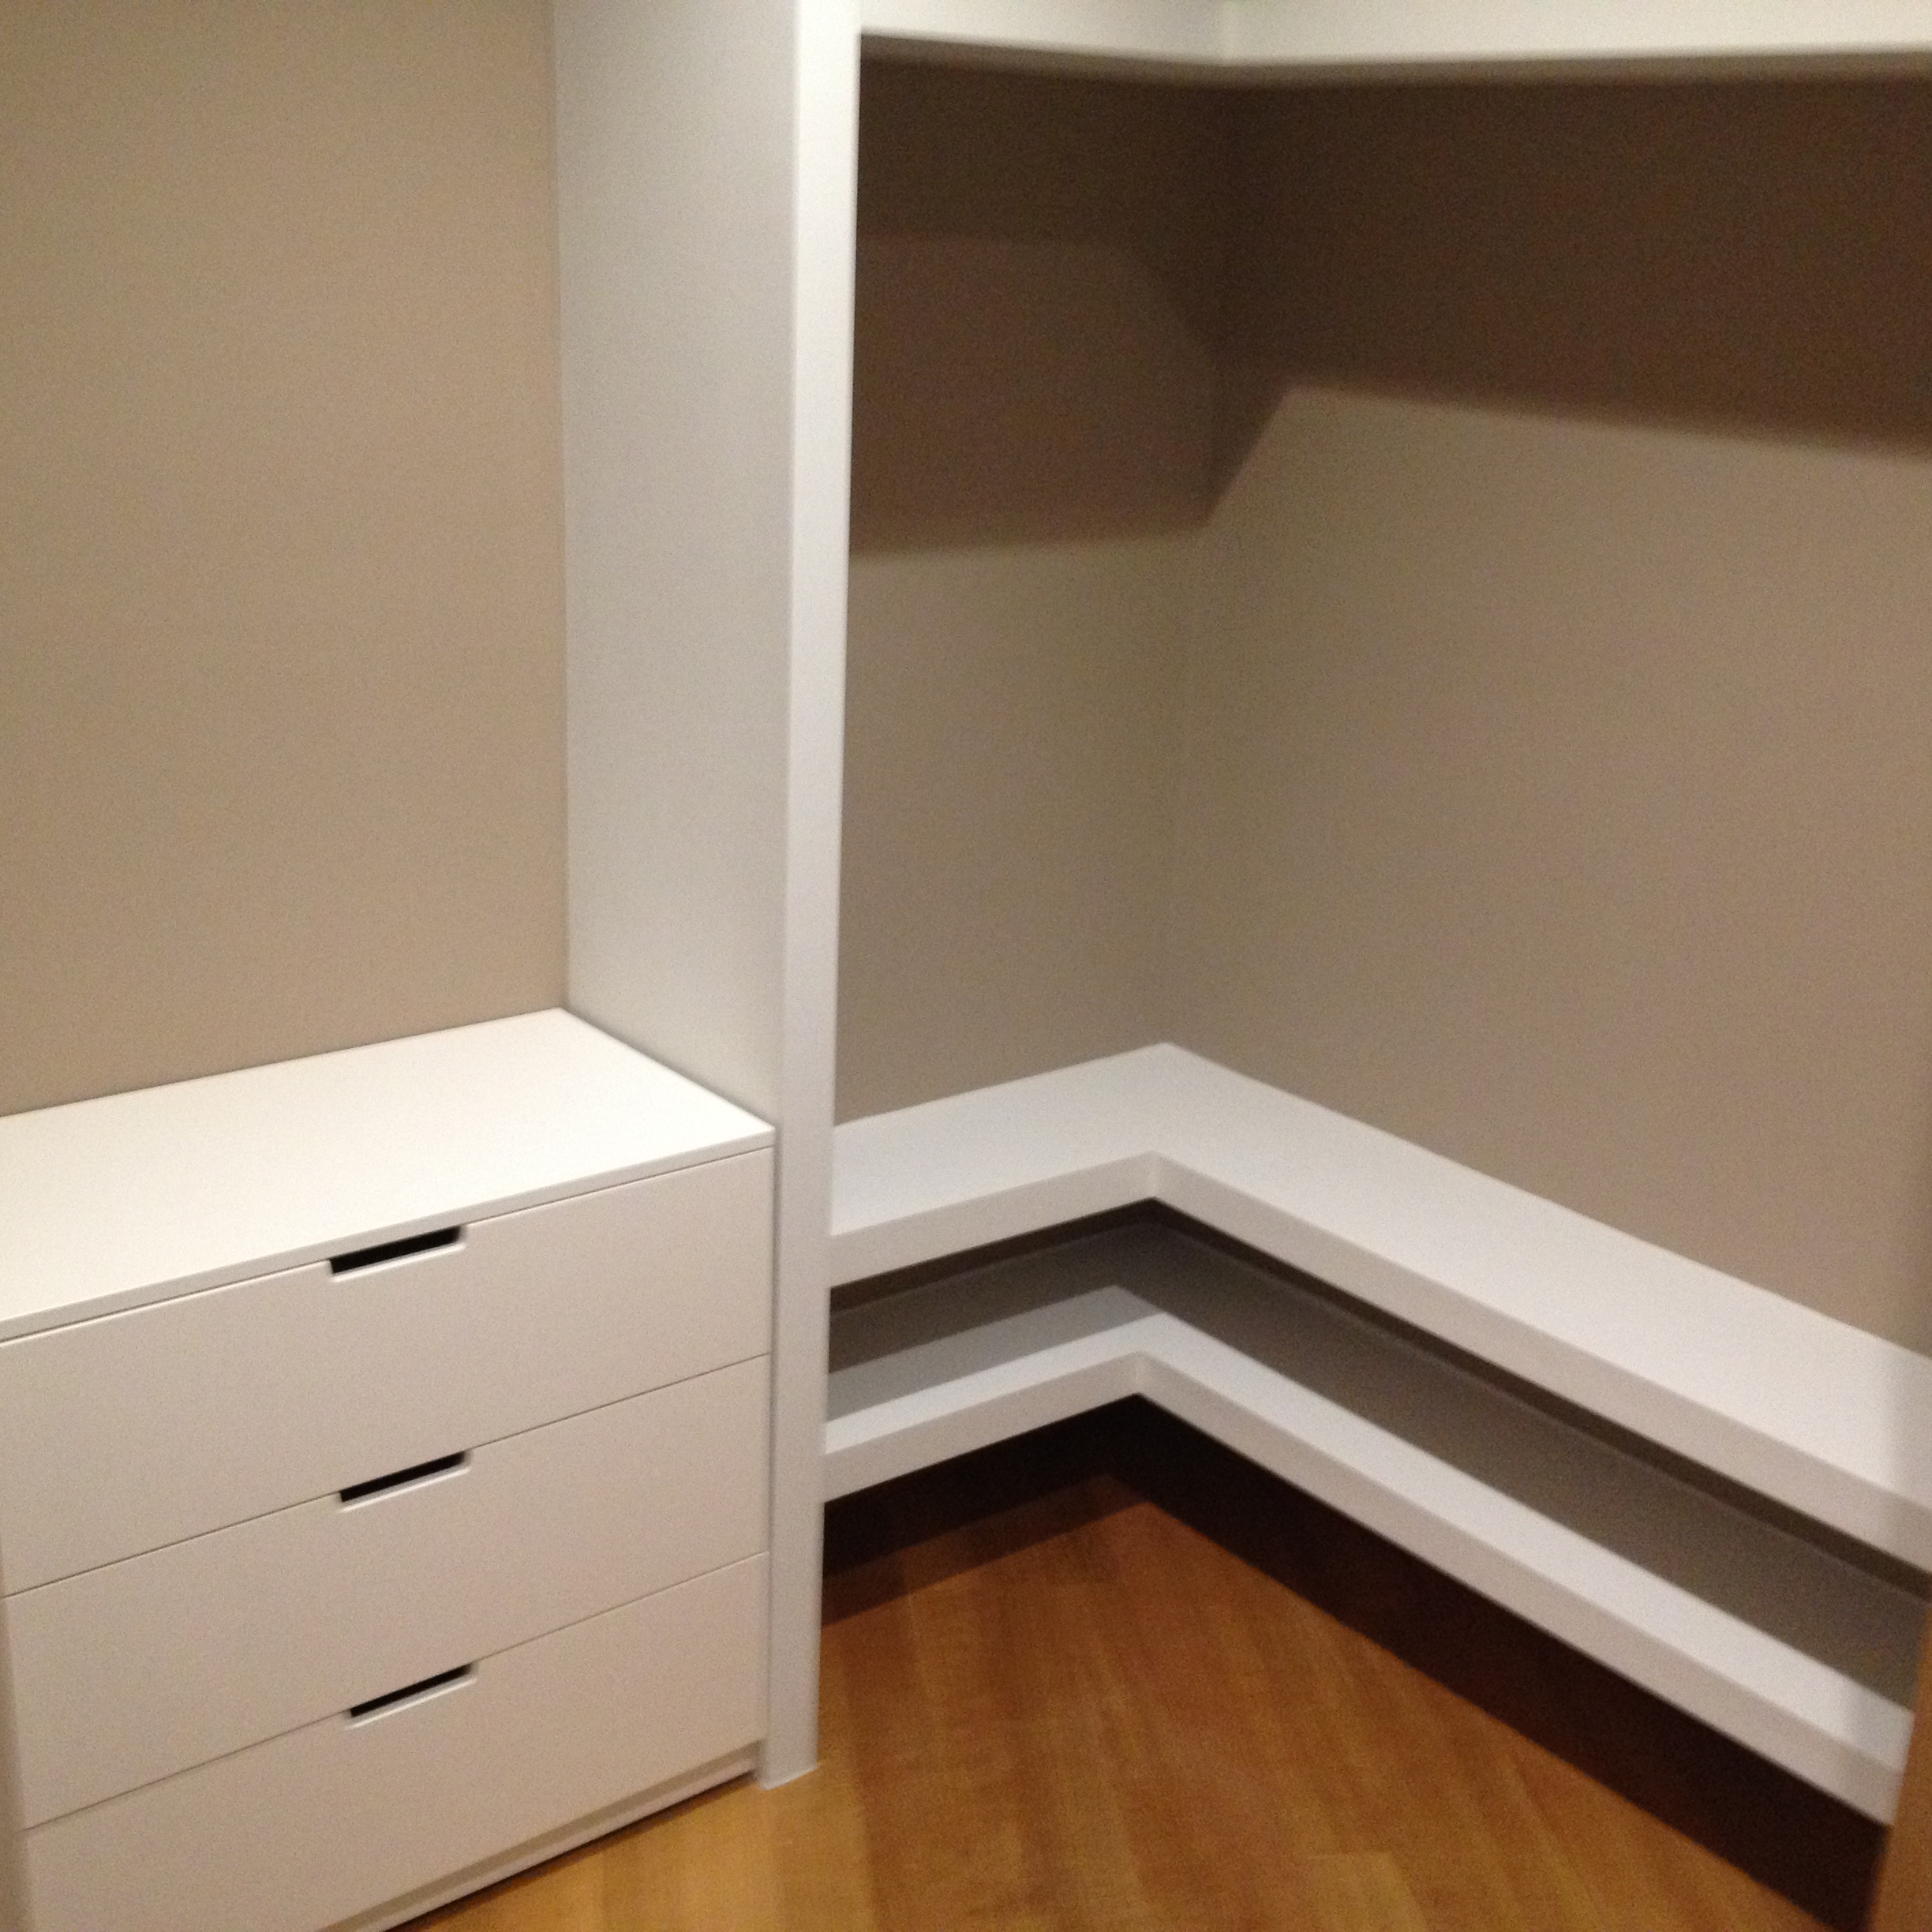 Walk-in wardrobe cabinets - Gythion